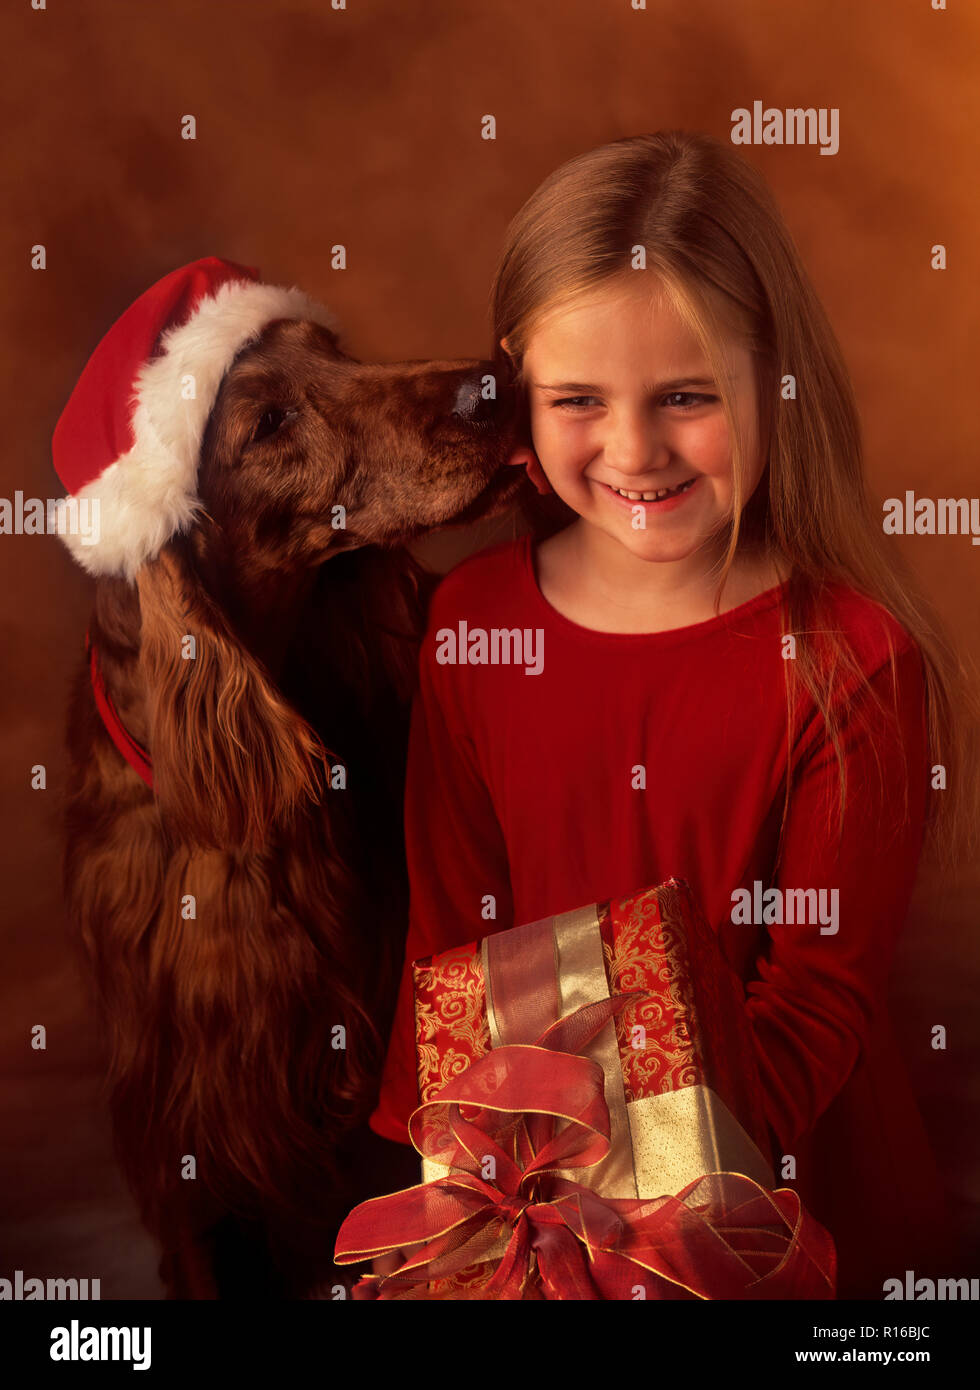 Dog as Christmas present - Stock Image